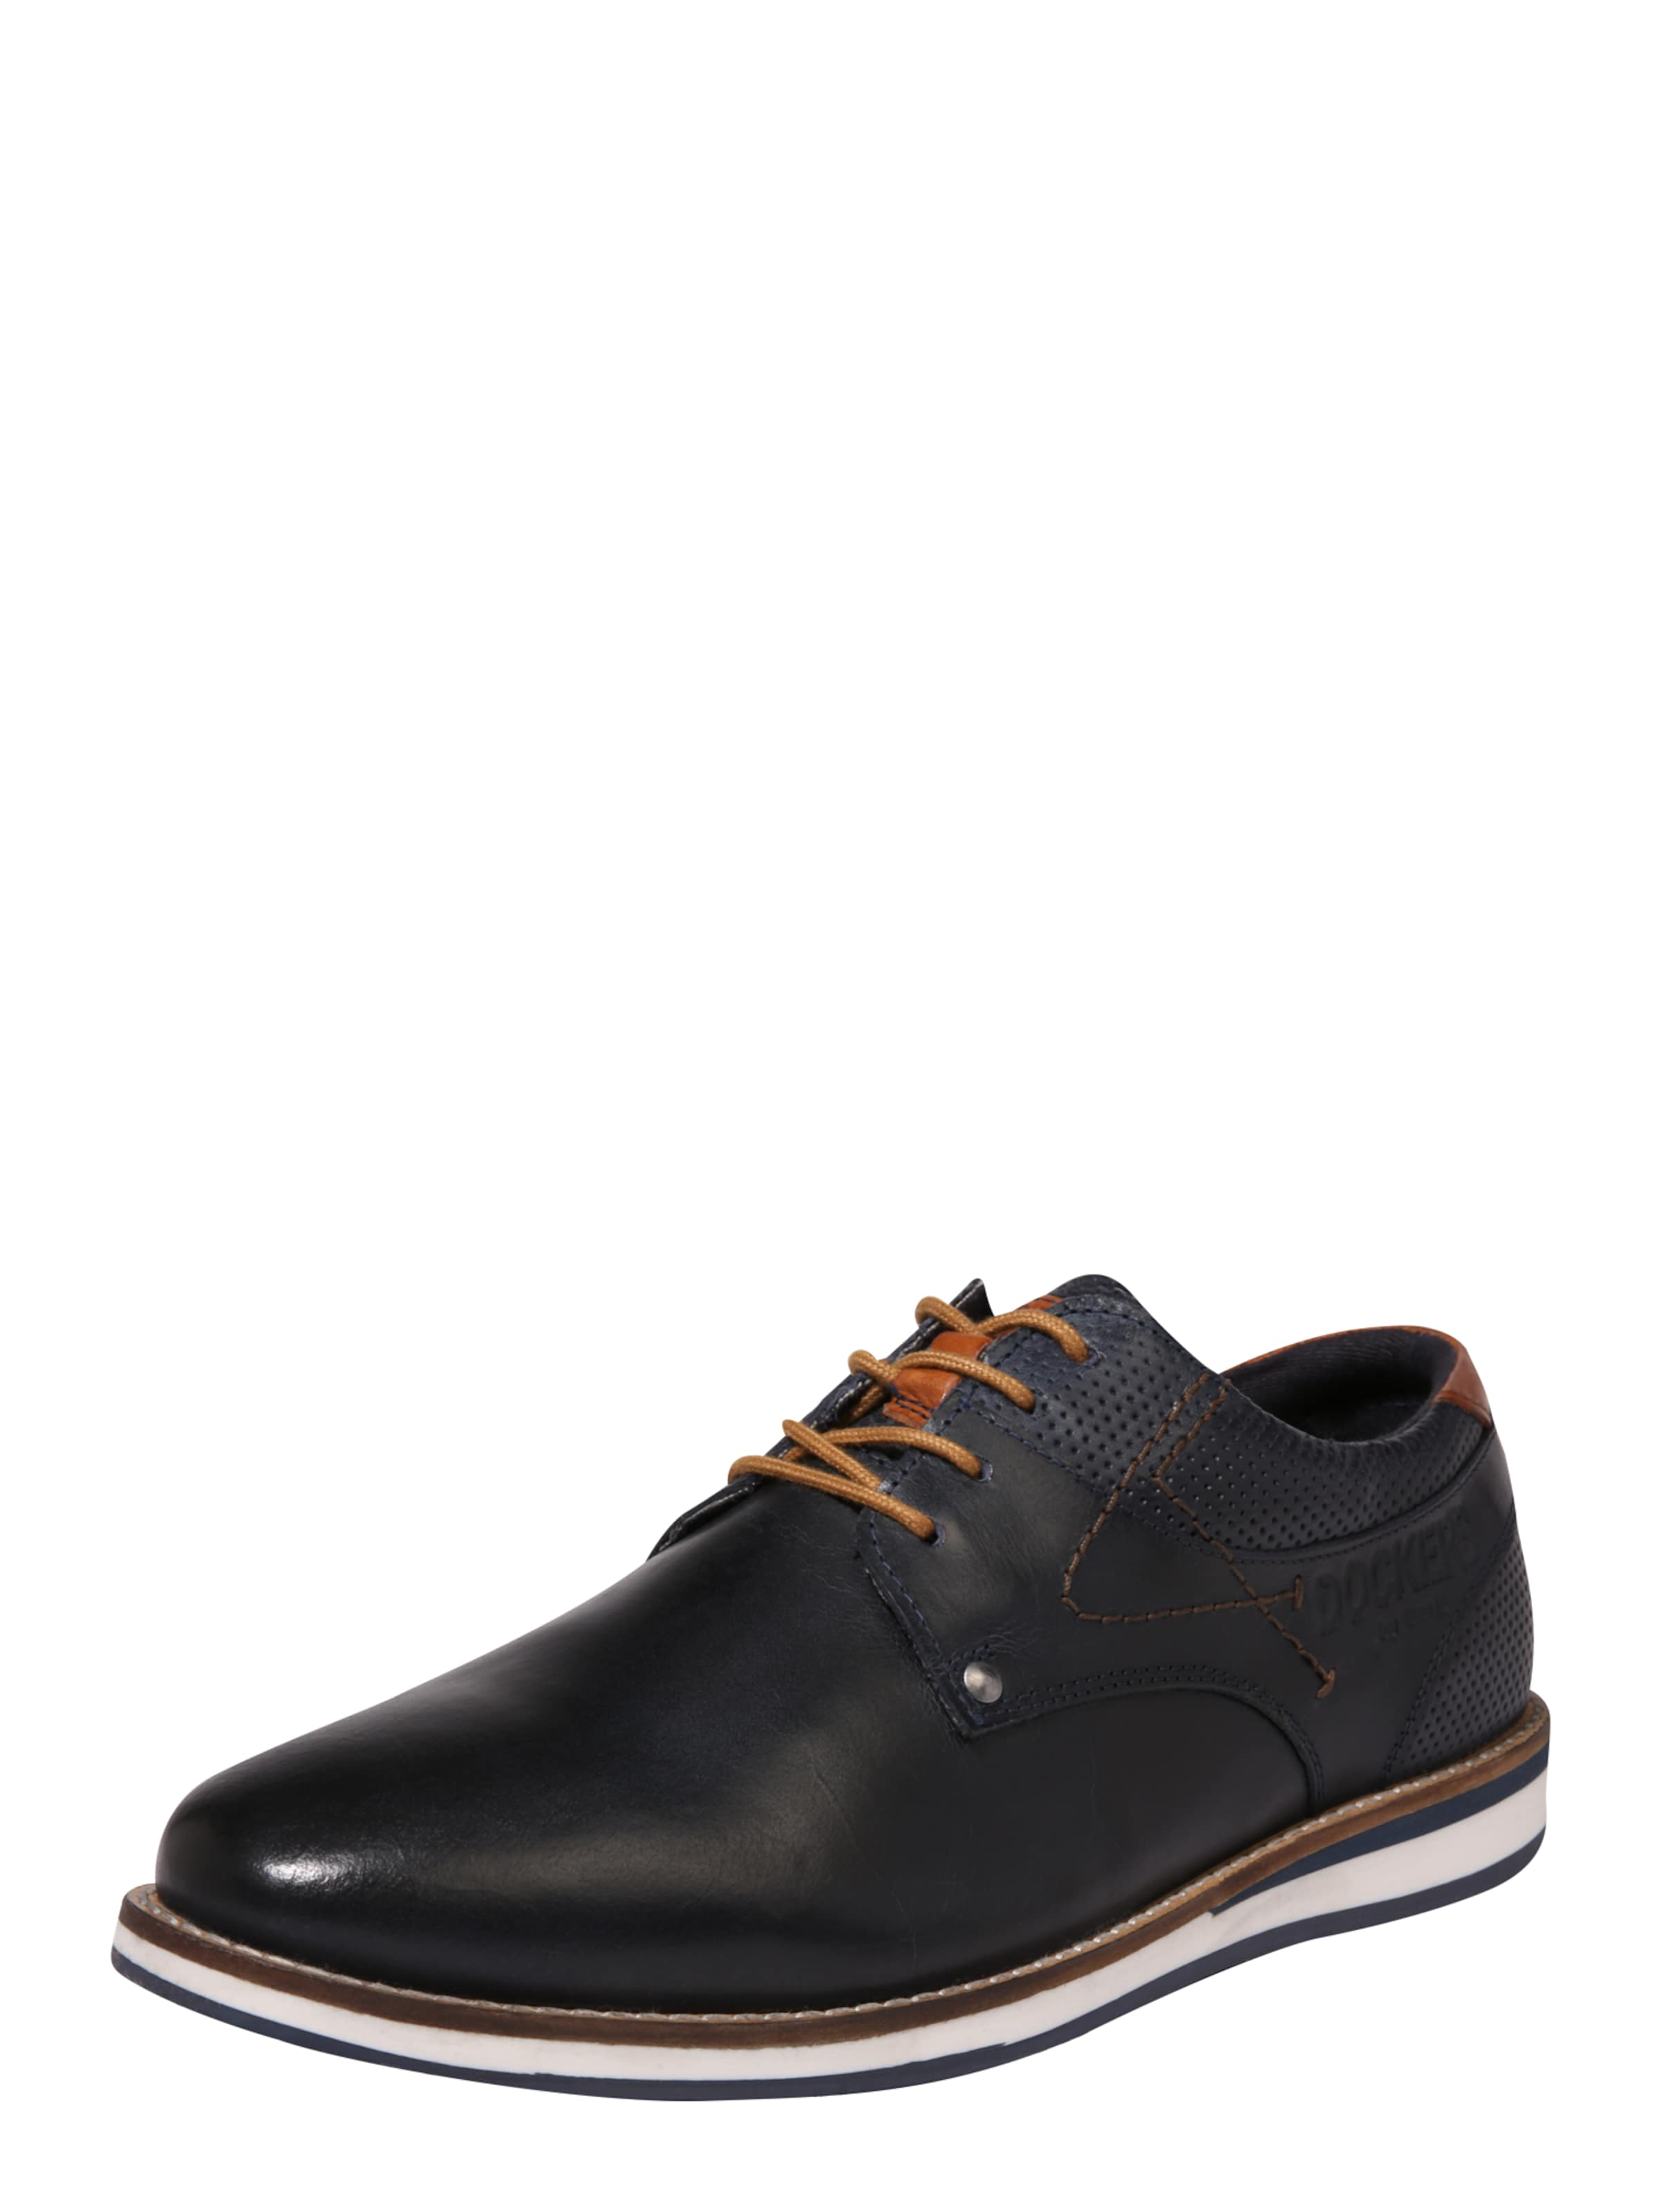 In By Dockers NavyCognac Gerli Halbschuhe JcT1ulFK35